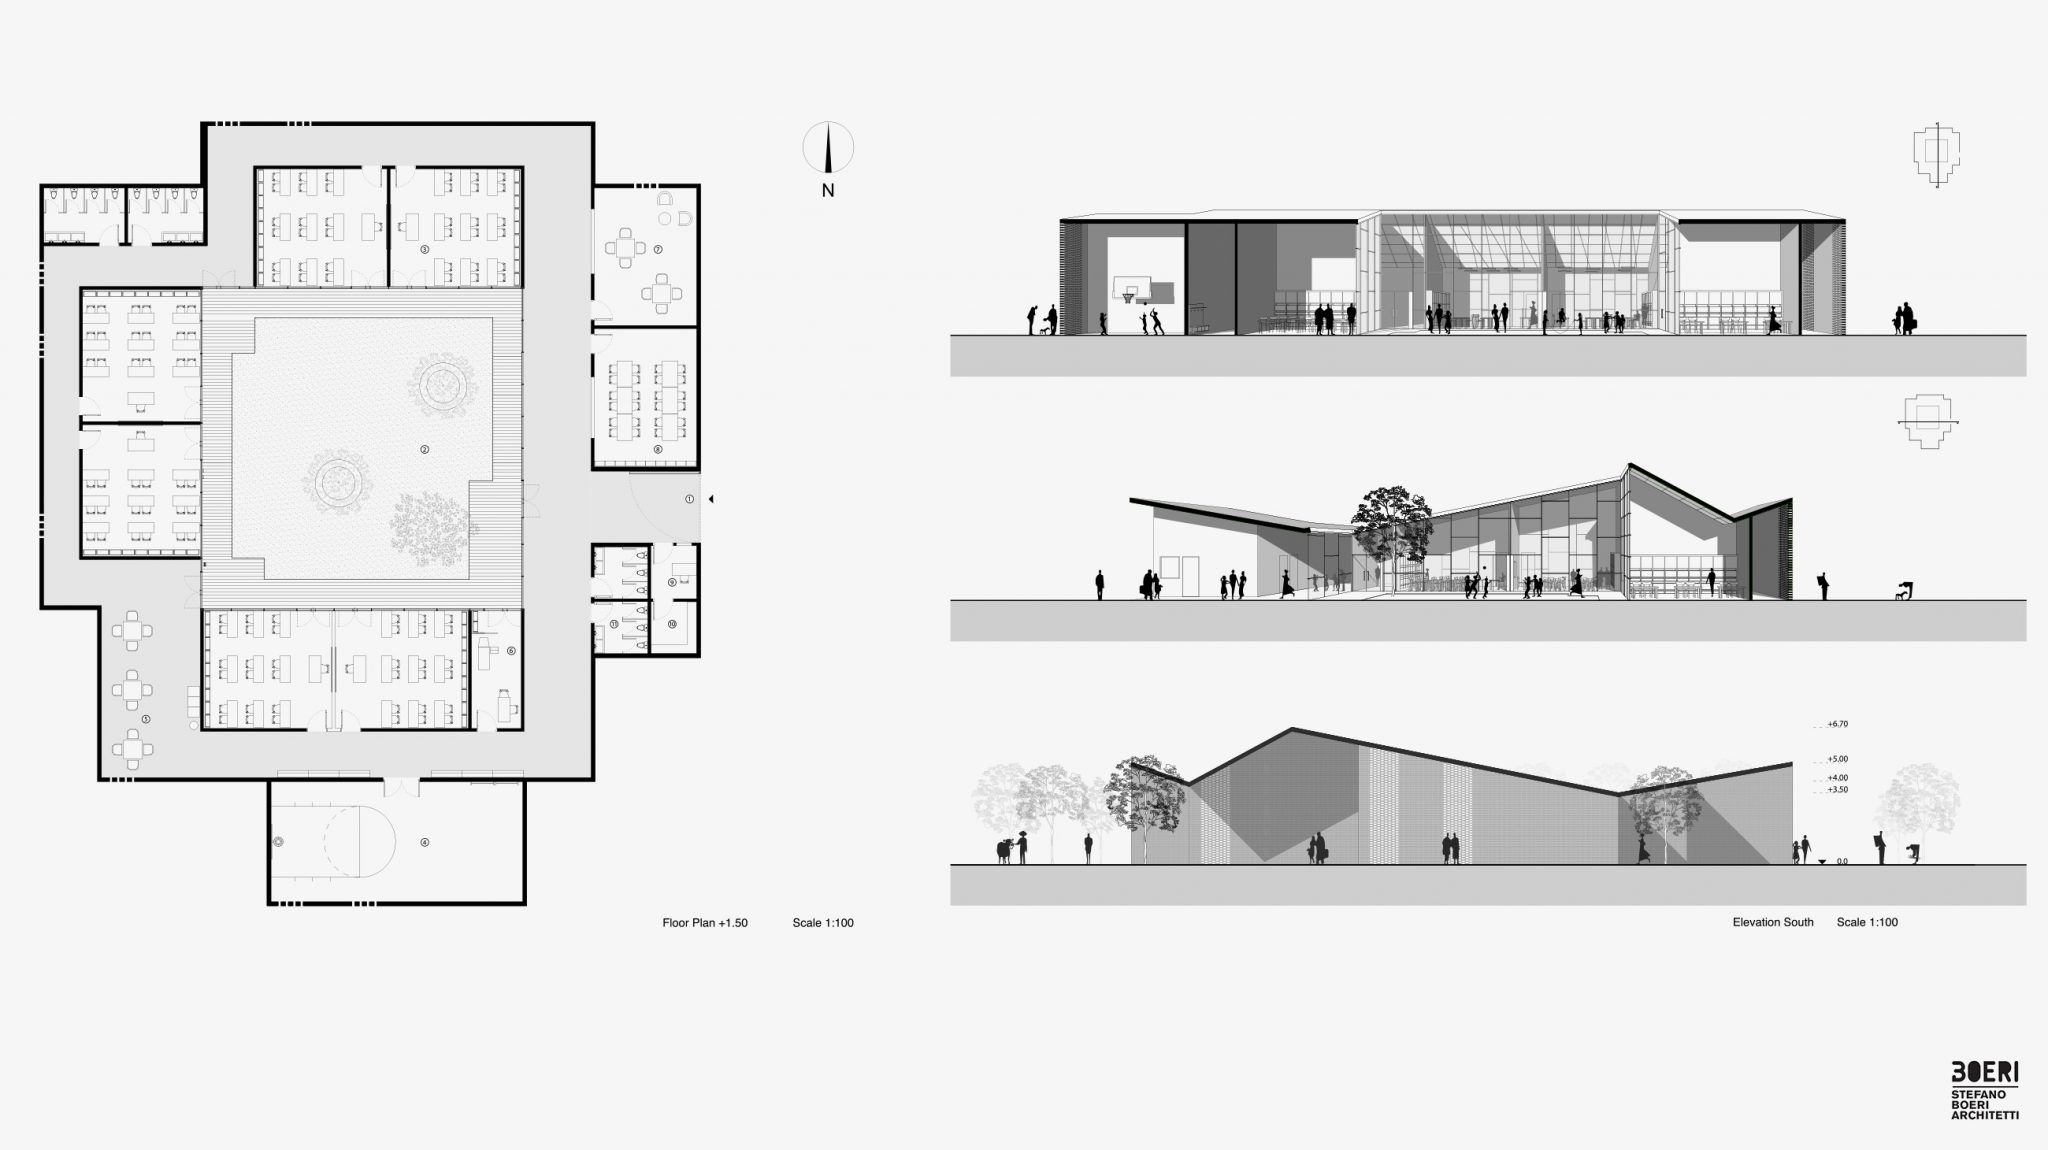 Plan And Elevation Cuisine : Seeds of culture slow village stefano boeri architetti